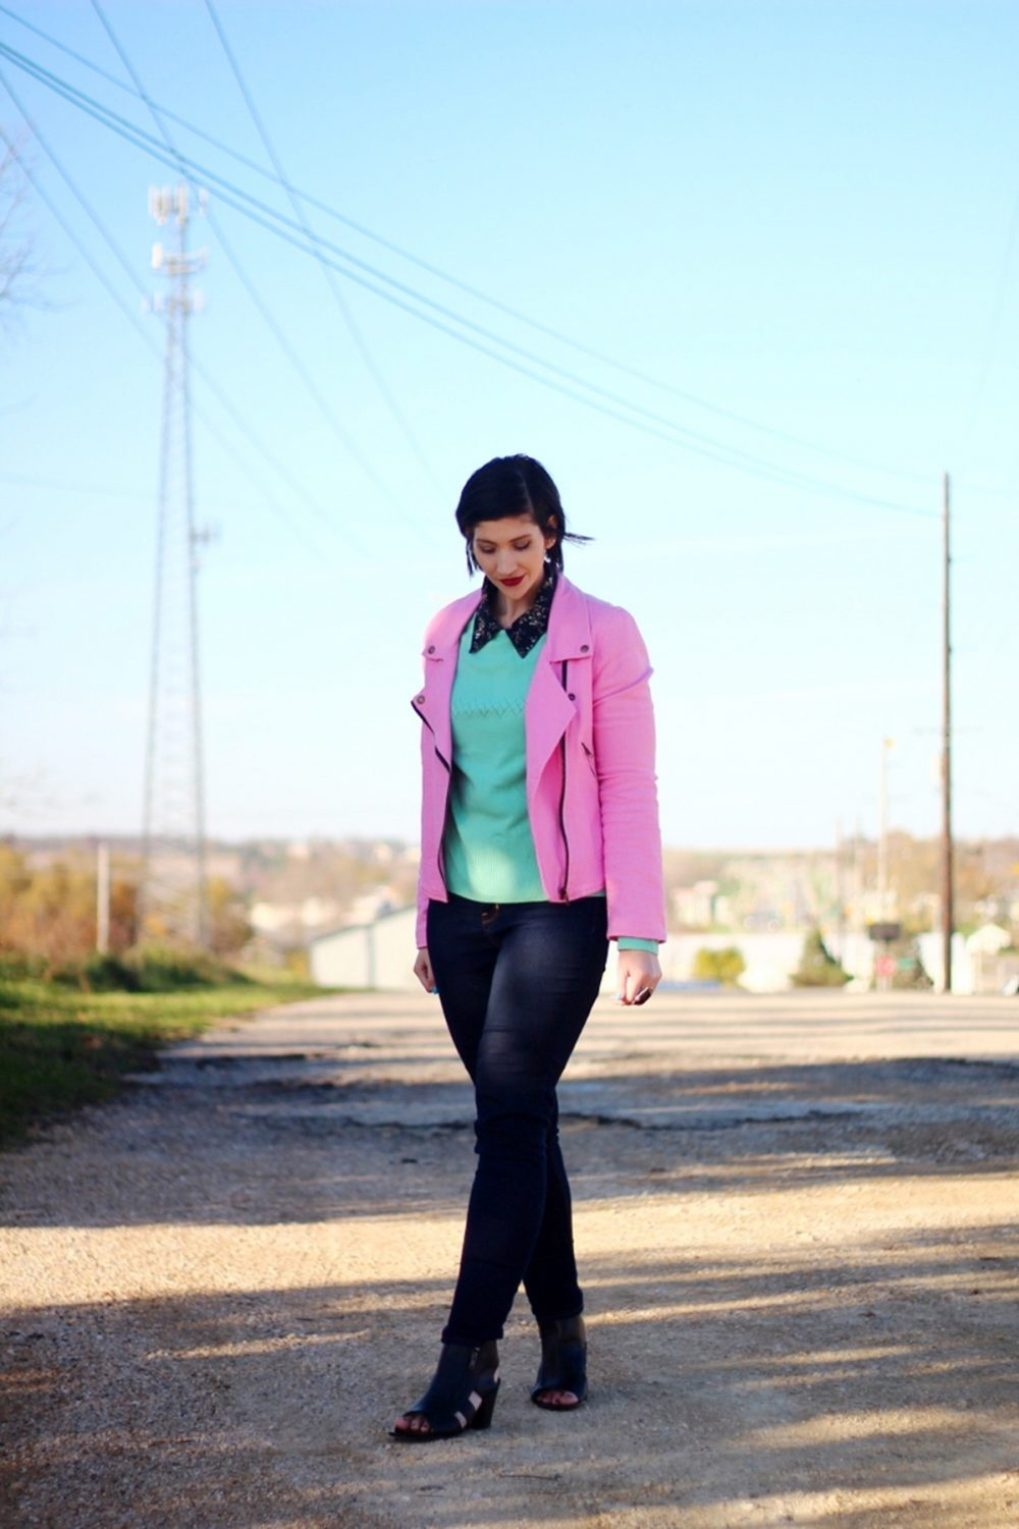 Outfit: Floral collar top, mint green sweater, bright pink jacket, dark lipstick, high waisted dark wash jeans, black cut out high heels